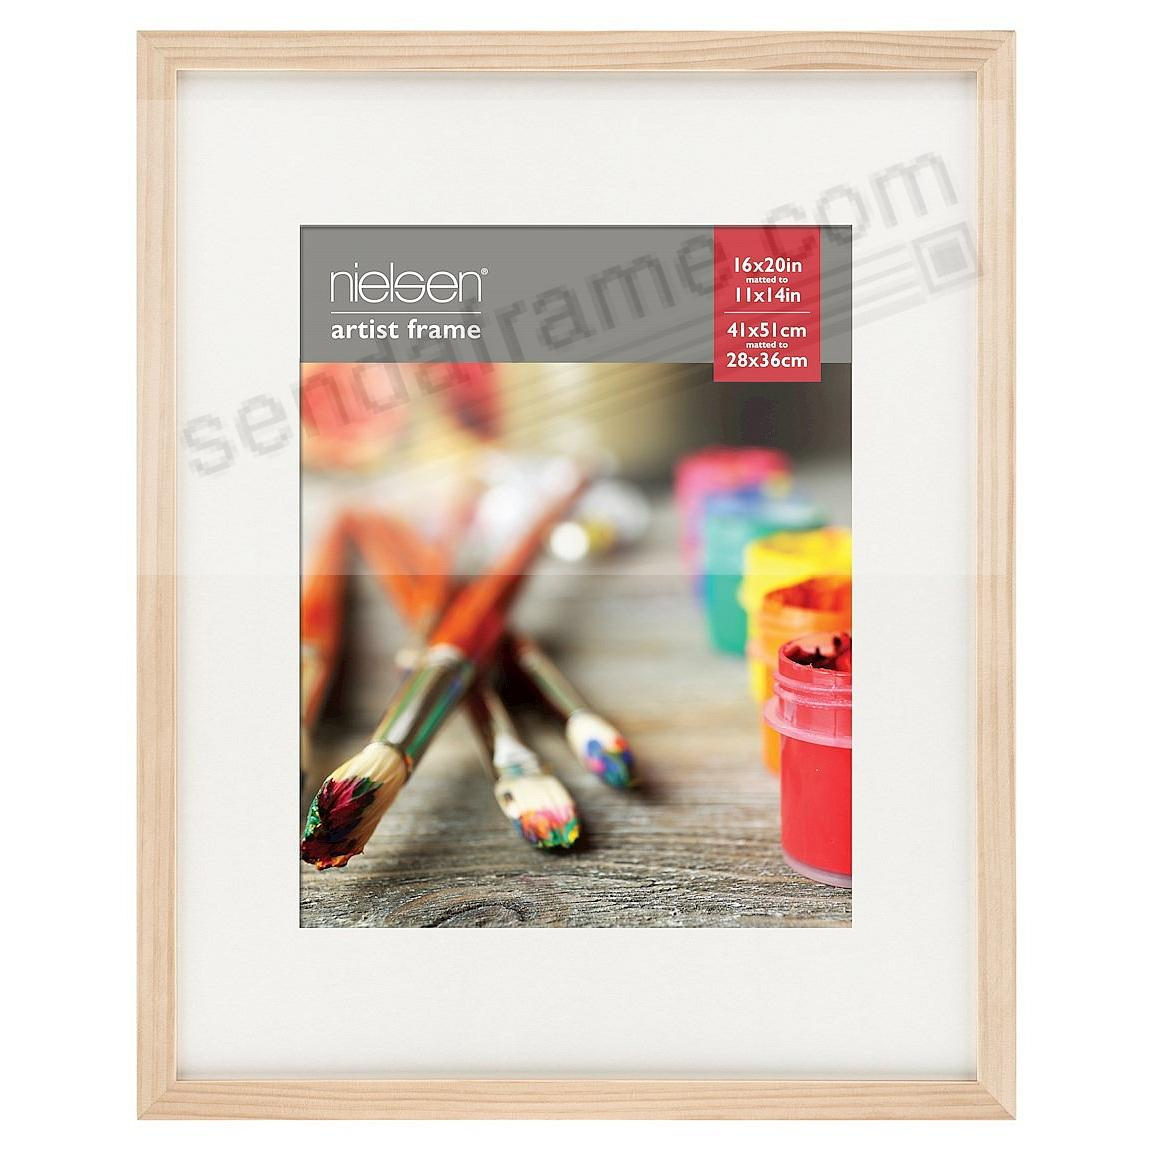 Ash Natural GALLERY-CANVAS DEPTH matted wood frame 16x20/11x14 by Nielsen-Bainbridge®